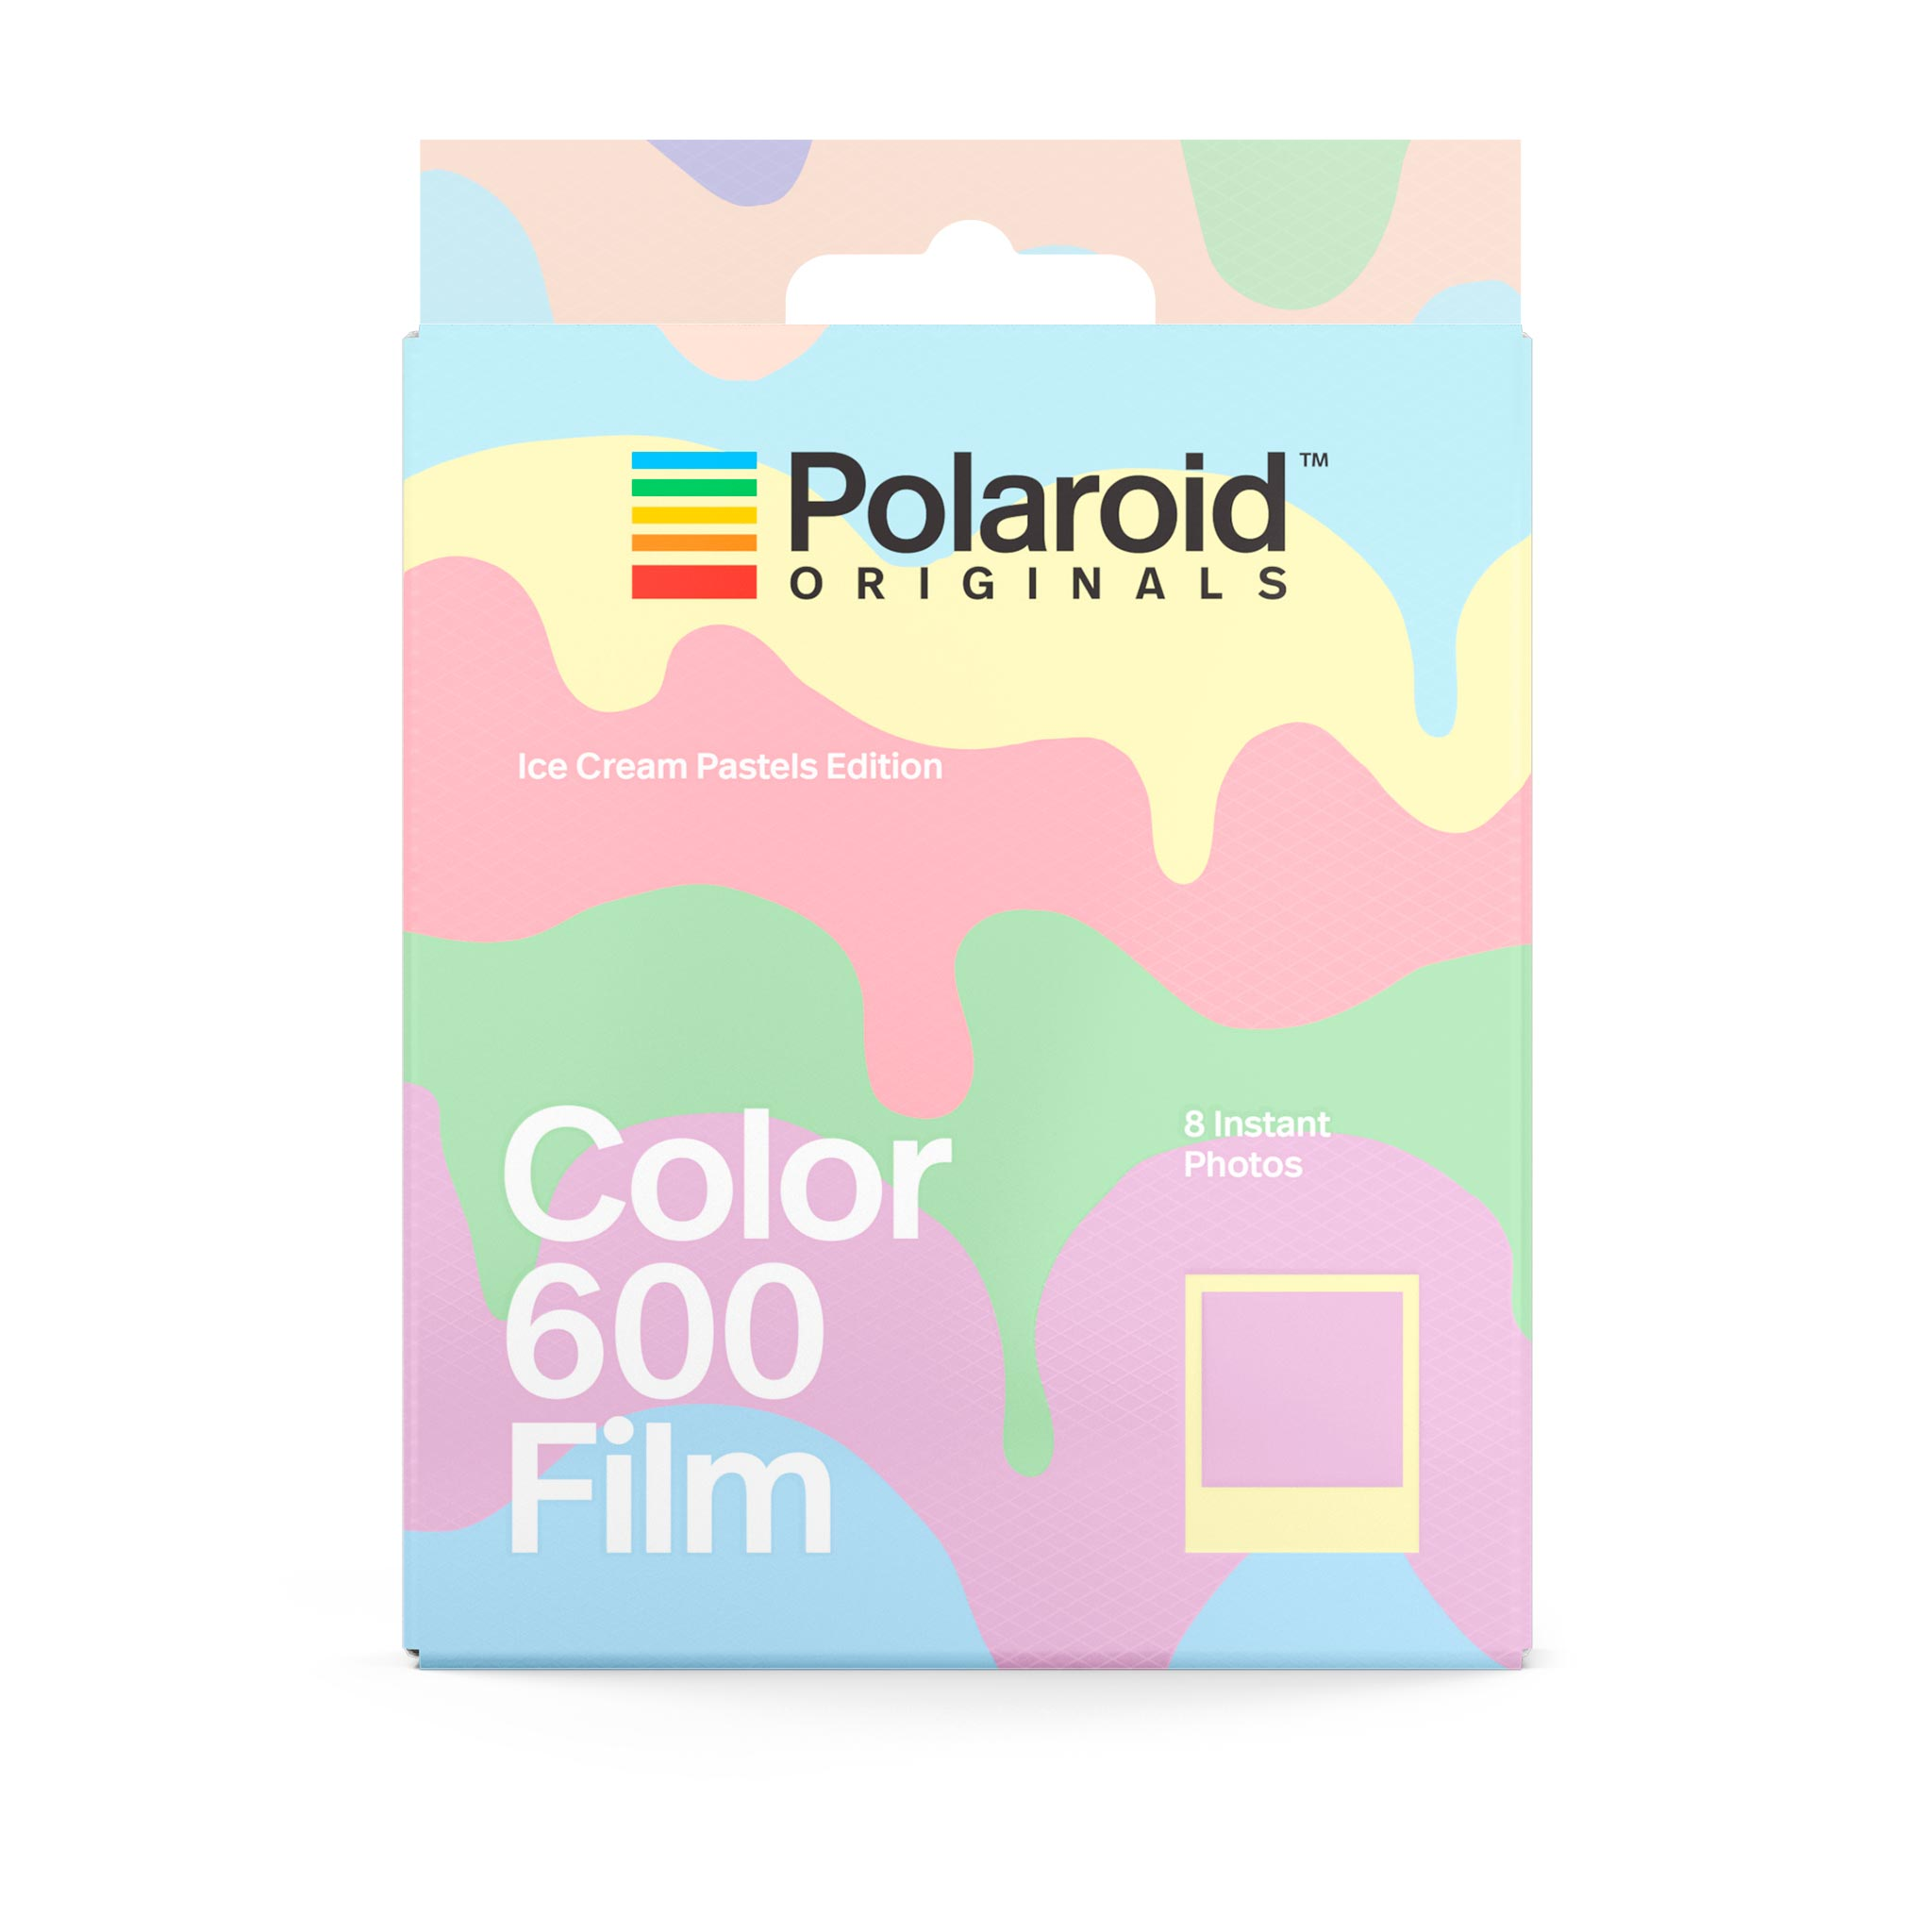 Color Film for 600 Ice Cream Pastels Edition